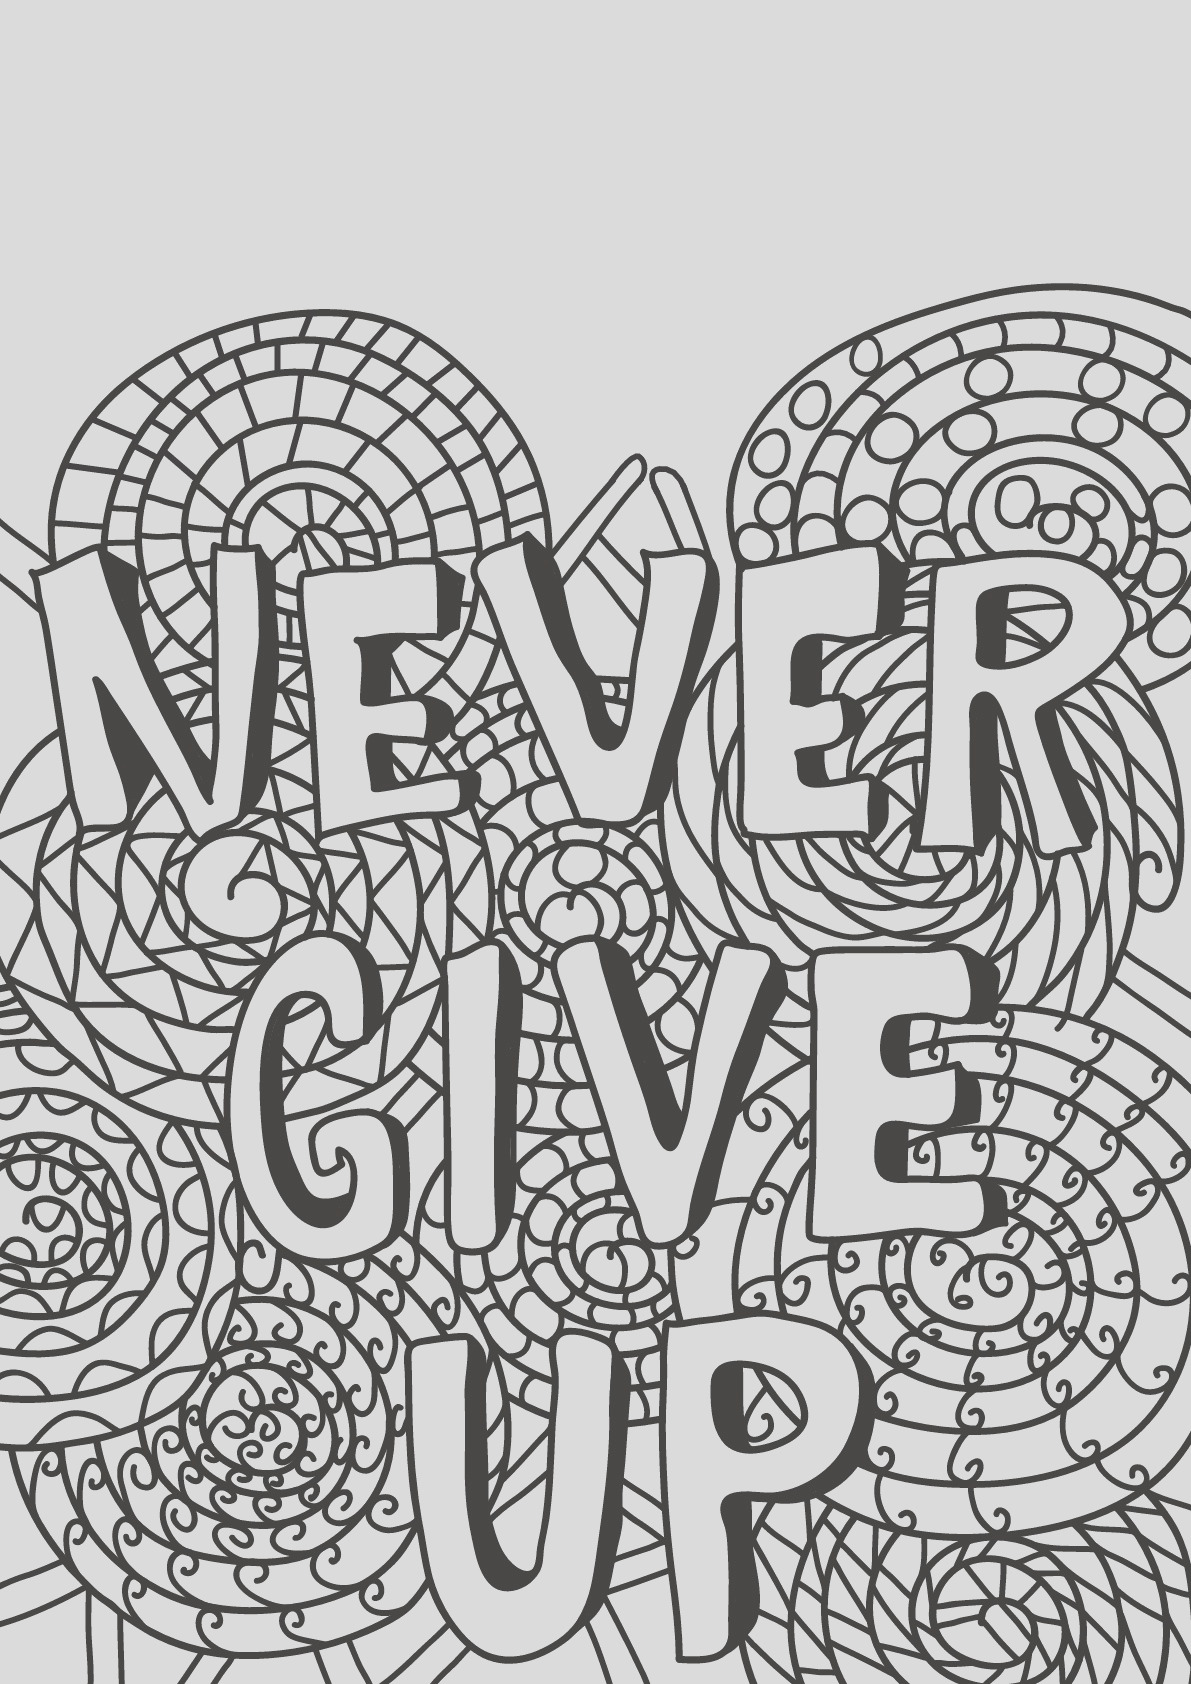 quotes image=quotes coloring free book quote 14 1